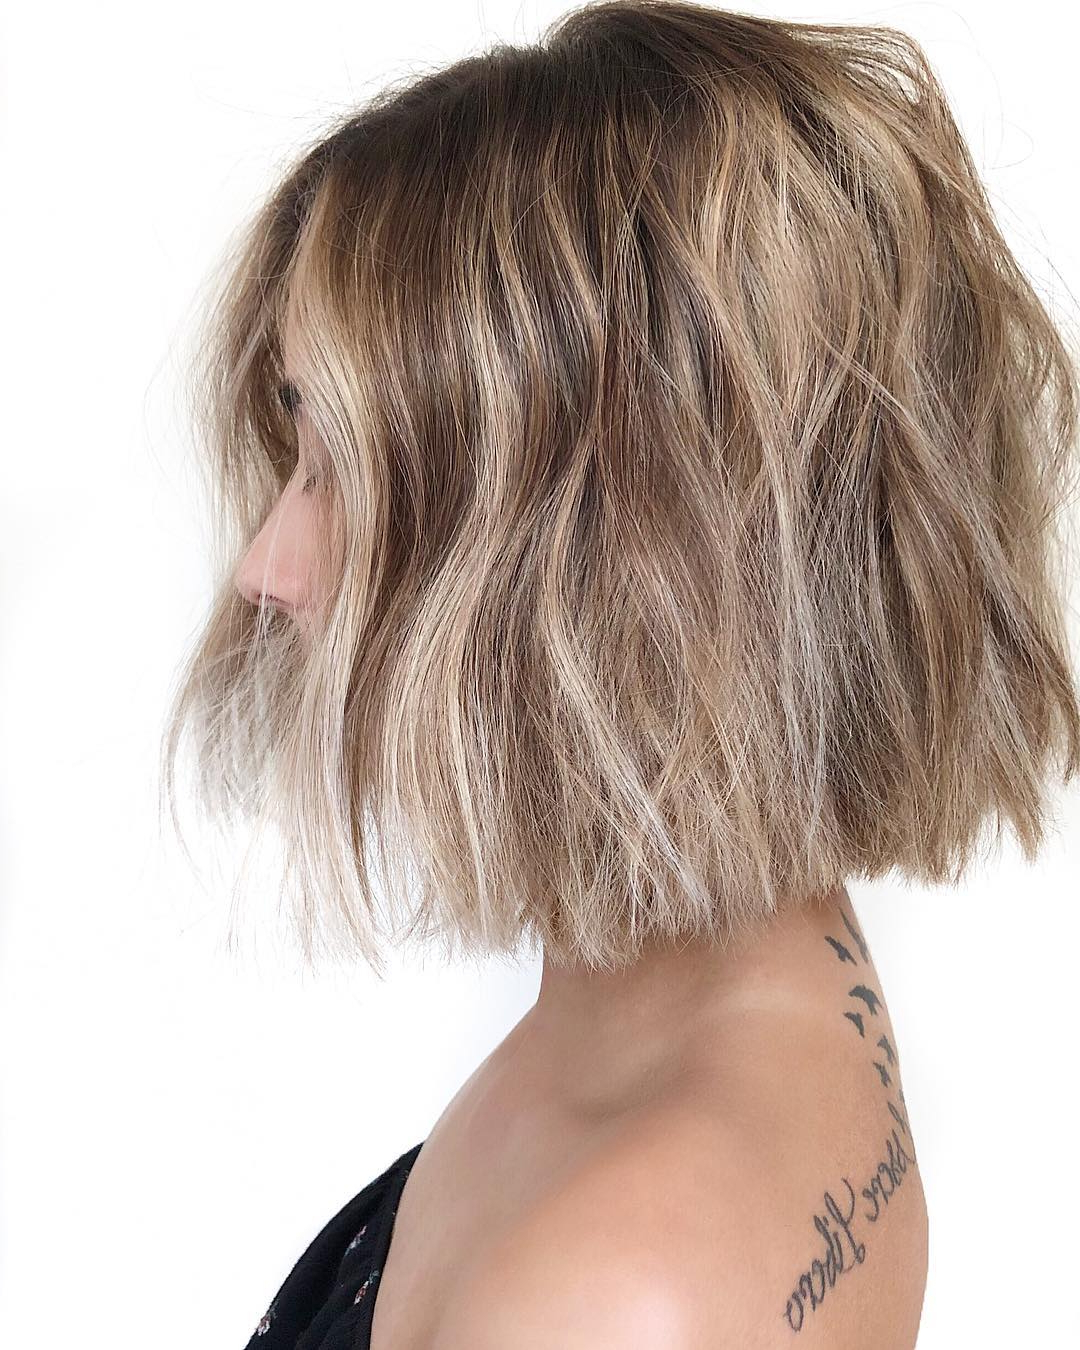 10 Trendy Messy Bob Hairstyles And Haircuts, 2019 Female Short Hair Regarding Messy Honey Blonde Bob Haircuts (View 3 of 20)